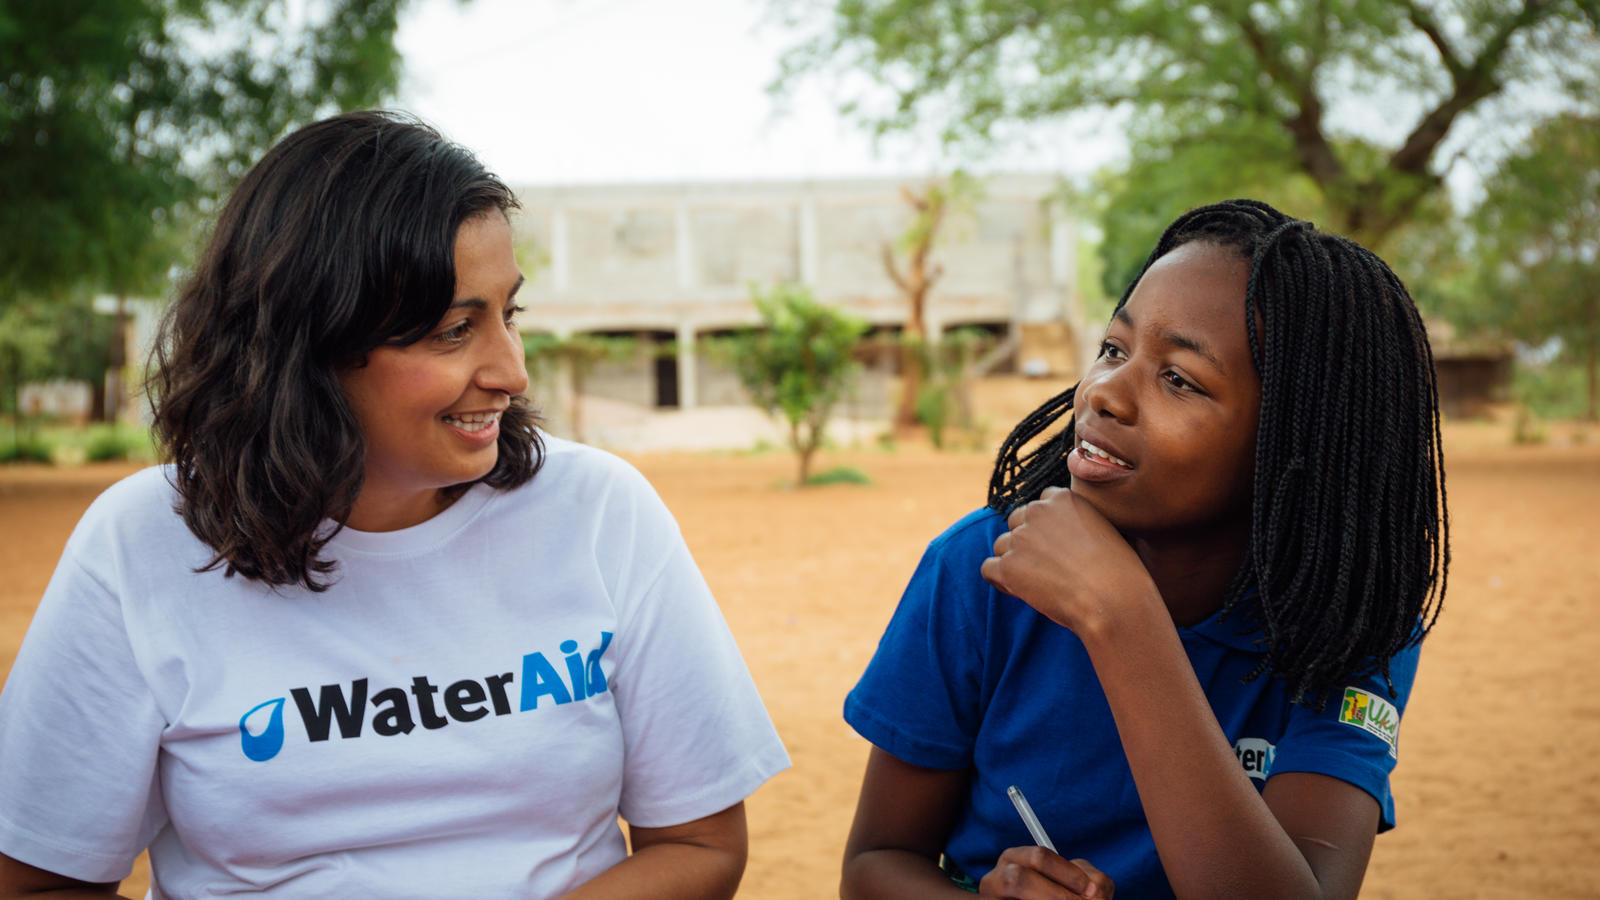 Rushy Hayer, Severn Trent Water, talks to a schoolgirl at Beluluane Primary School, Matola Rio, Boane District, Mozambique, October 2016.